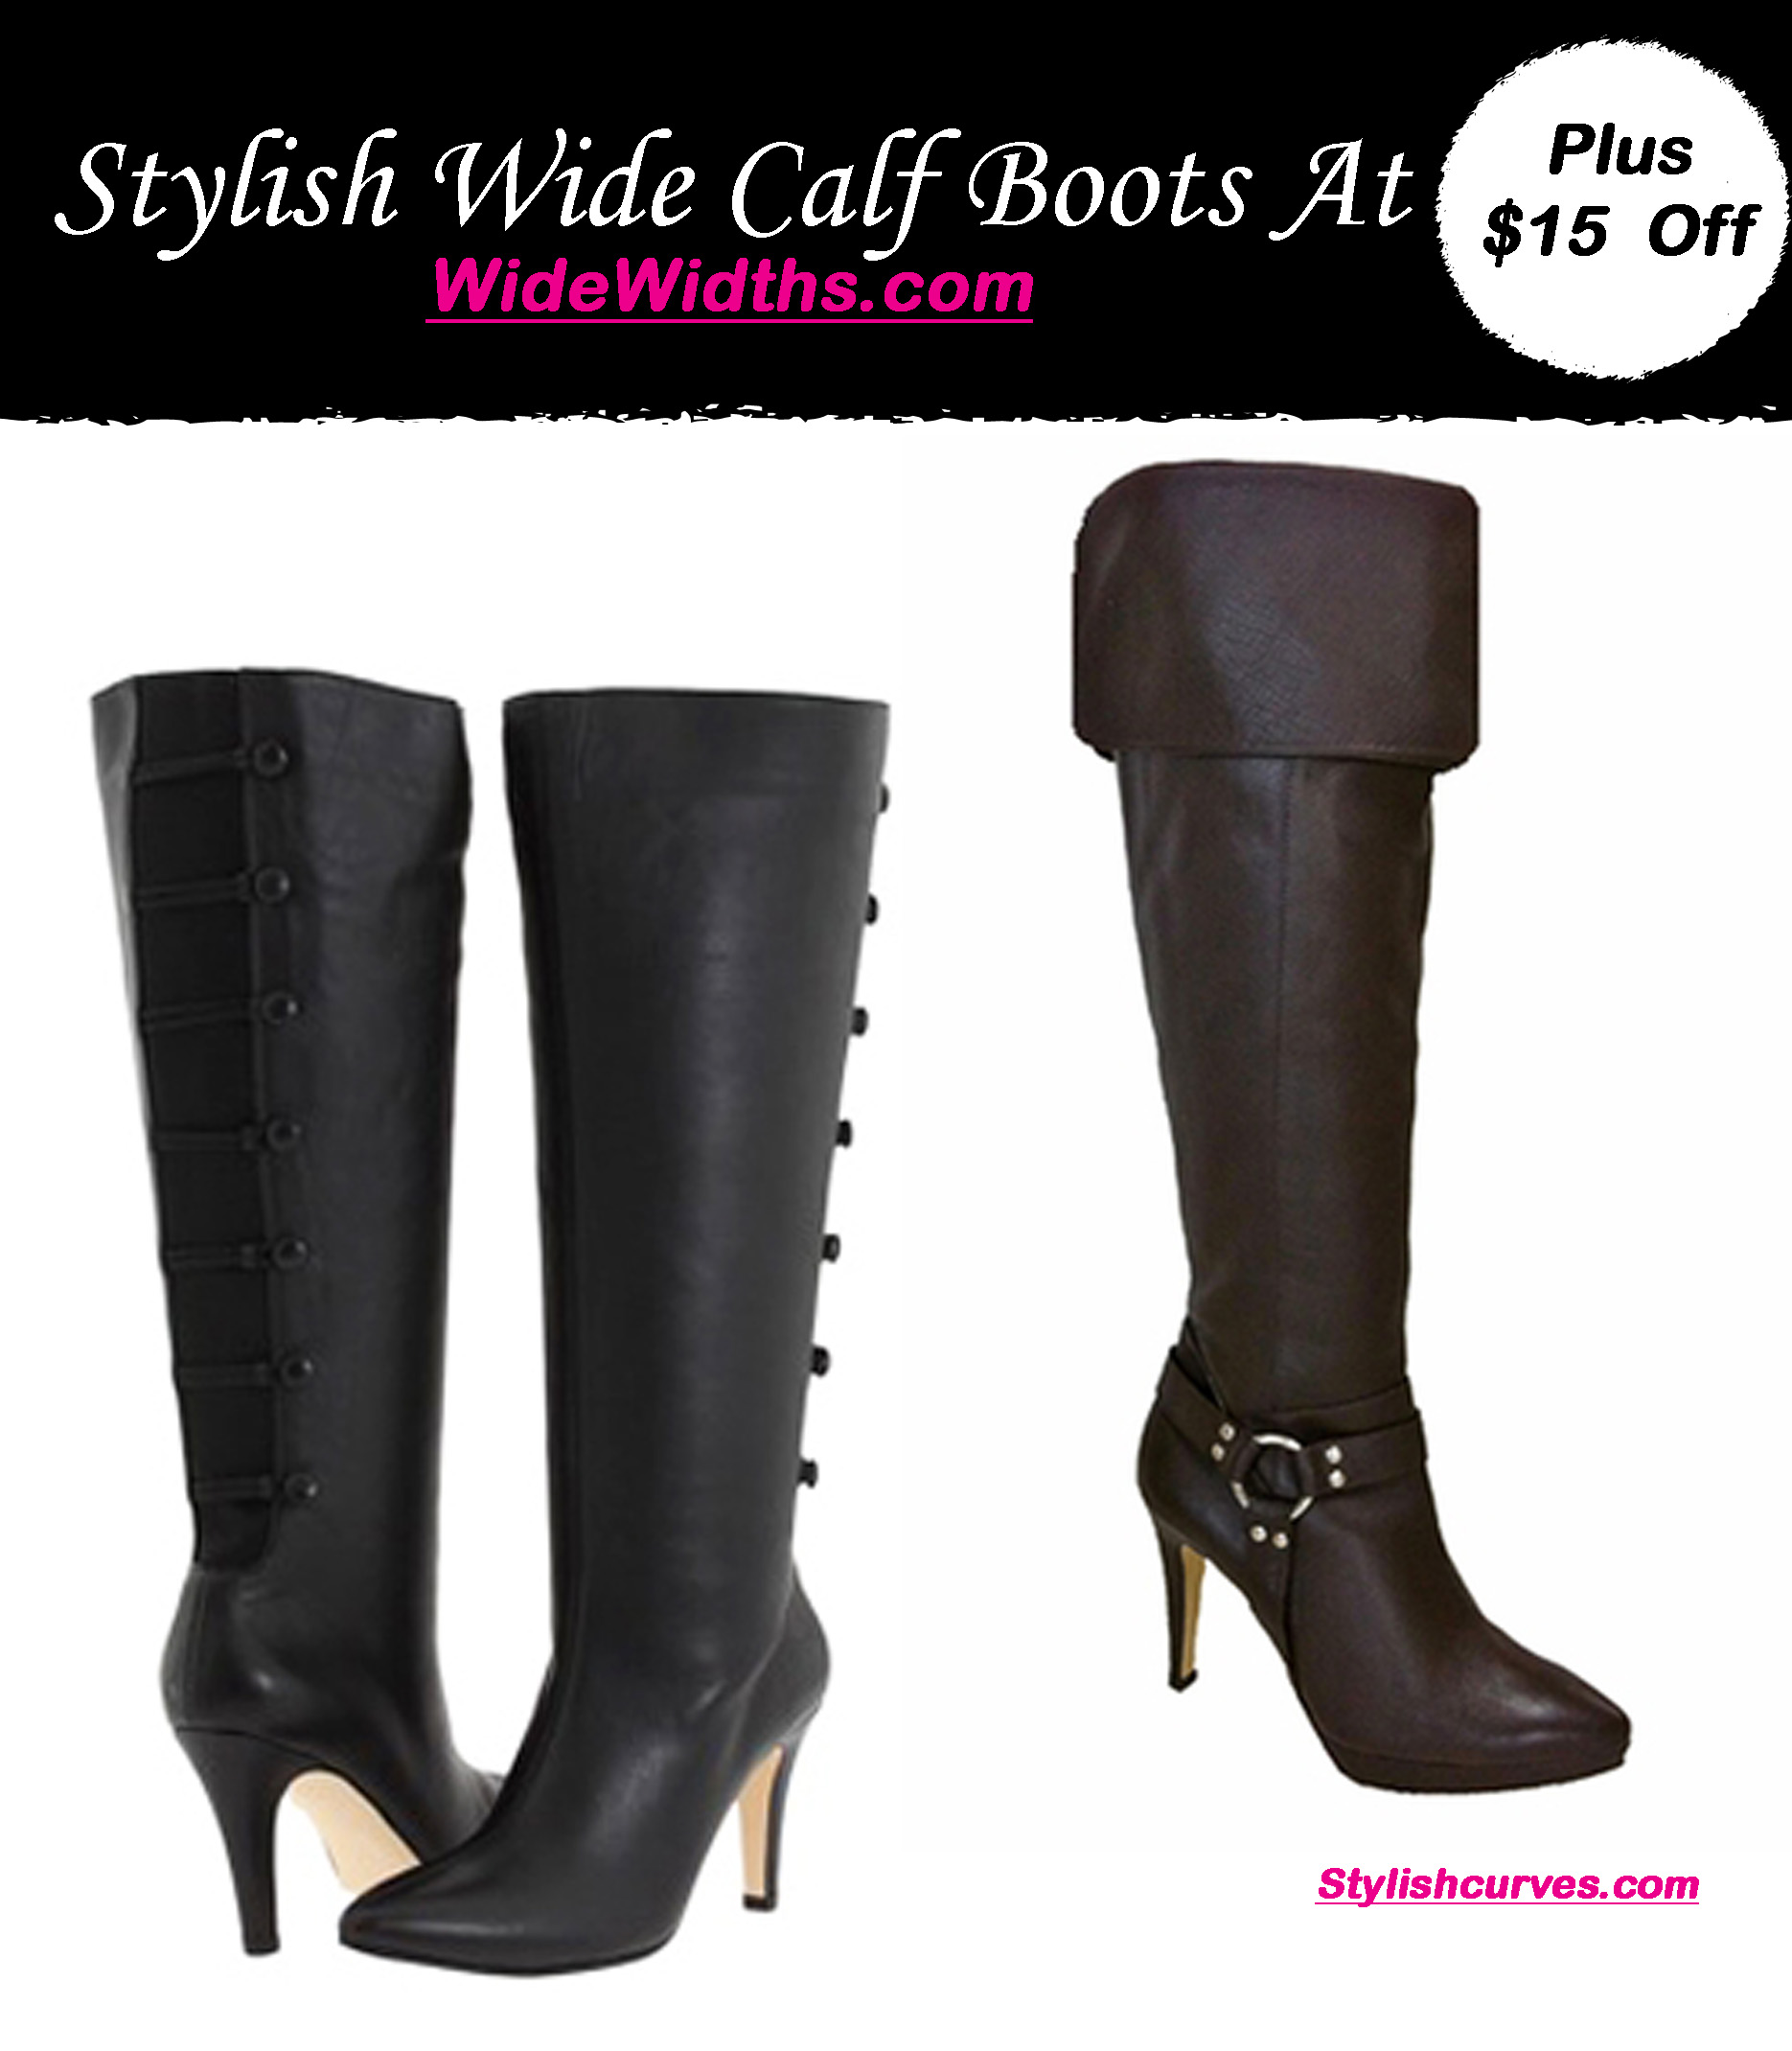 STYLISH WIDE WIDTH BOOTS FROM WIDEWIDTHS.COM, PLUS GET $15 OFF ...